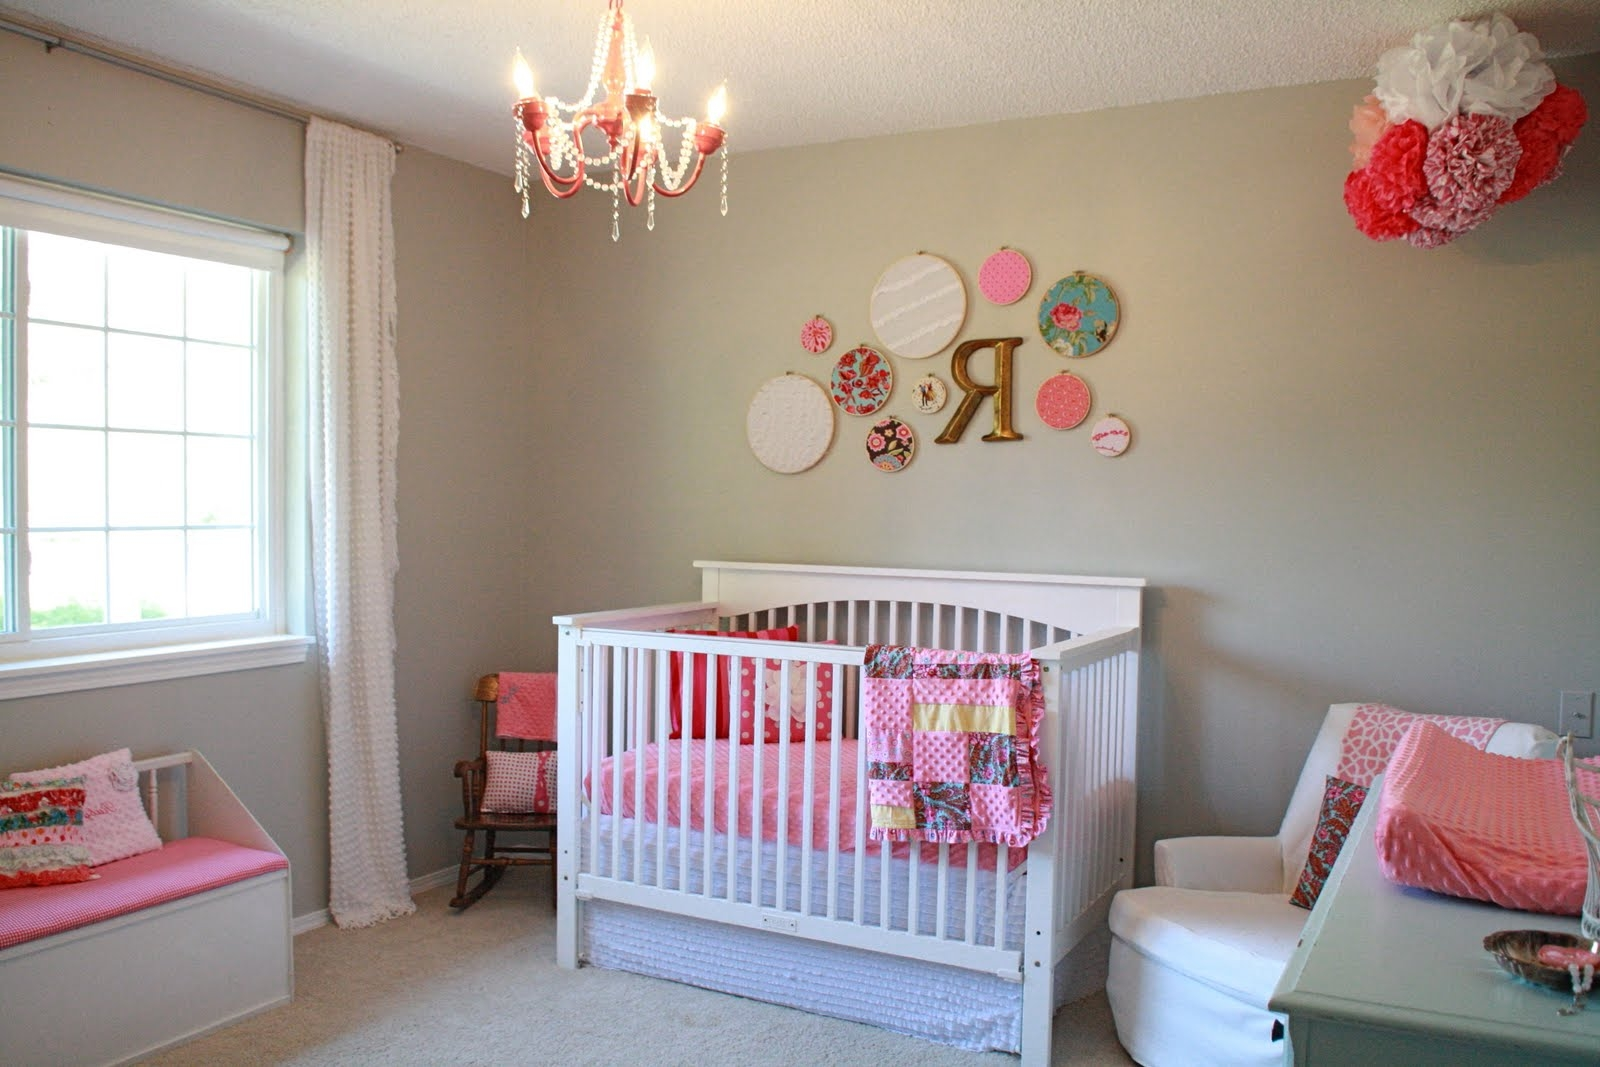 Baby girl room decor ideas for Good ideas for room decorating